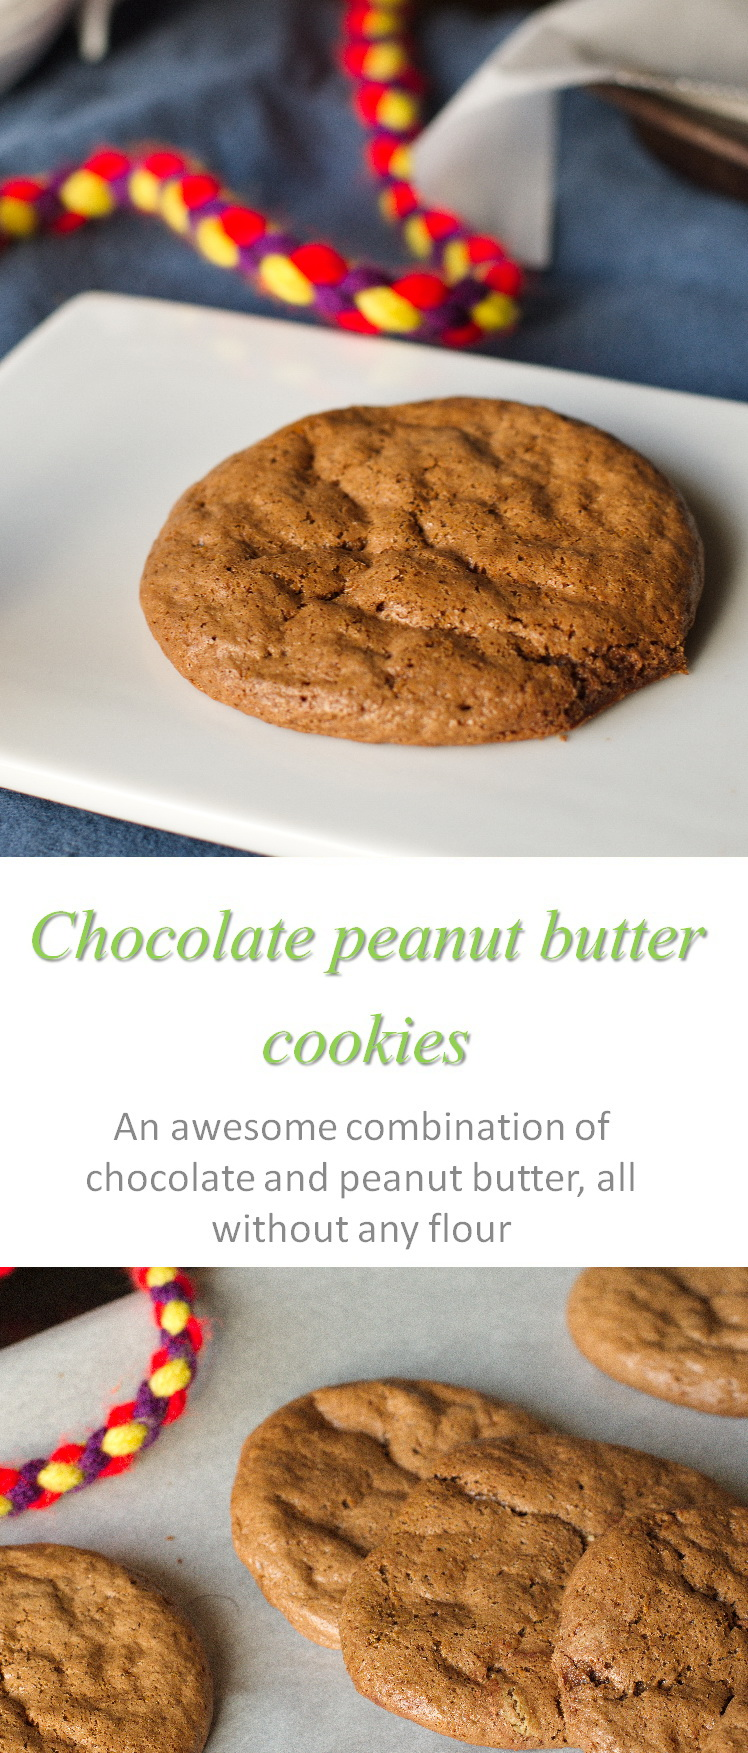 These are yummy flourless chocolate peanut butter cookies, using no gluten, no dairy but so very easy! #peanutbutter